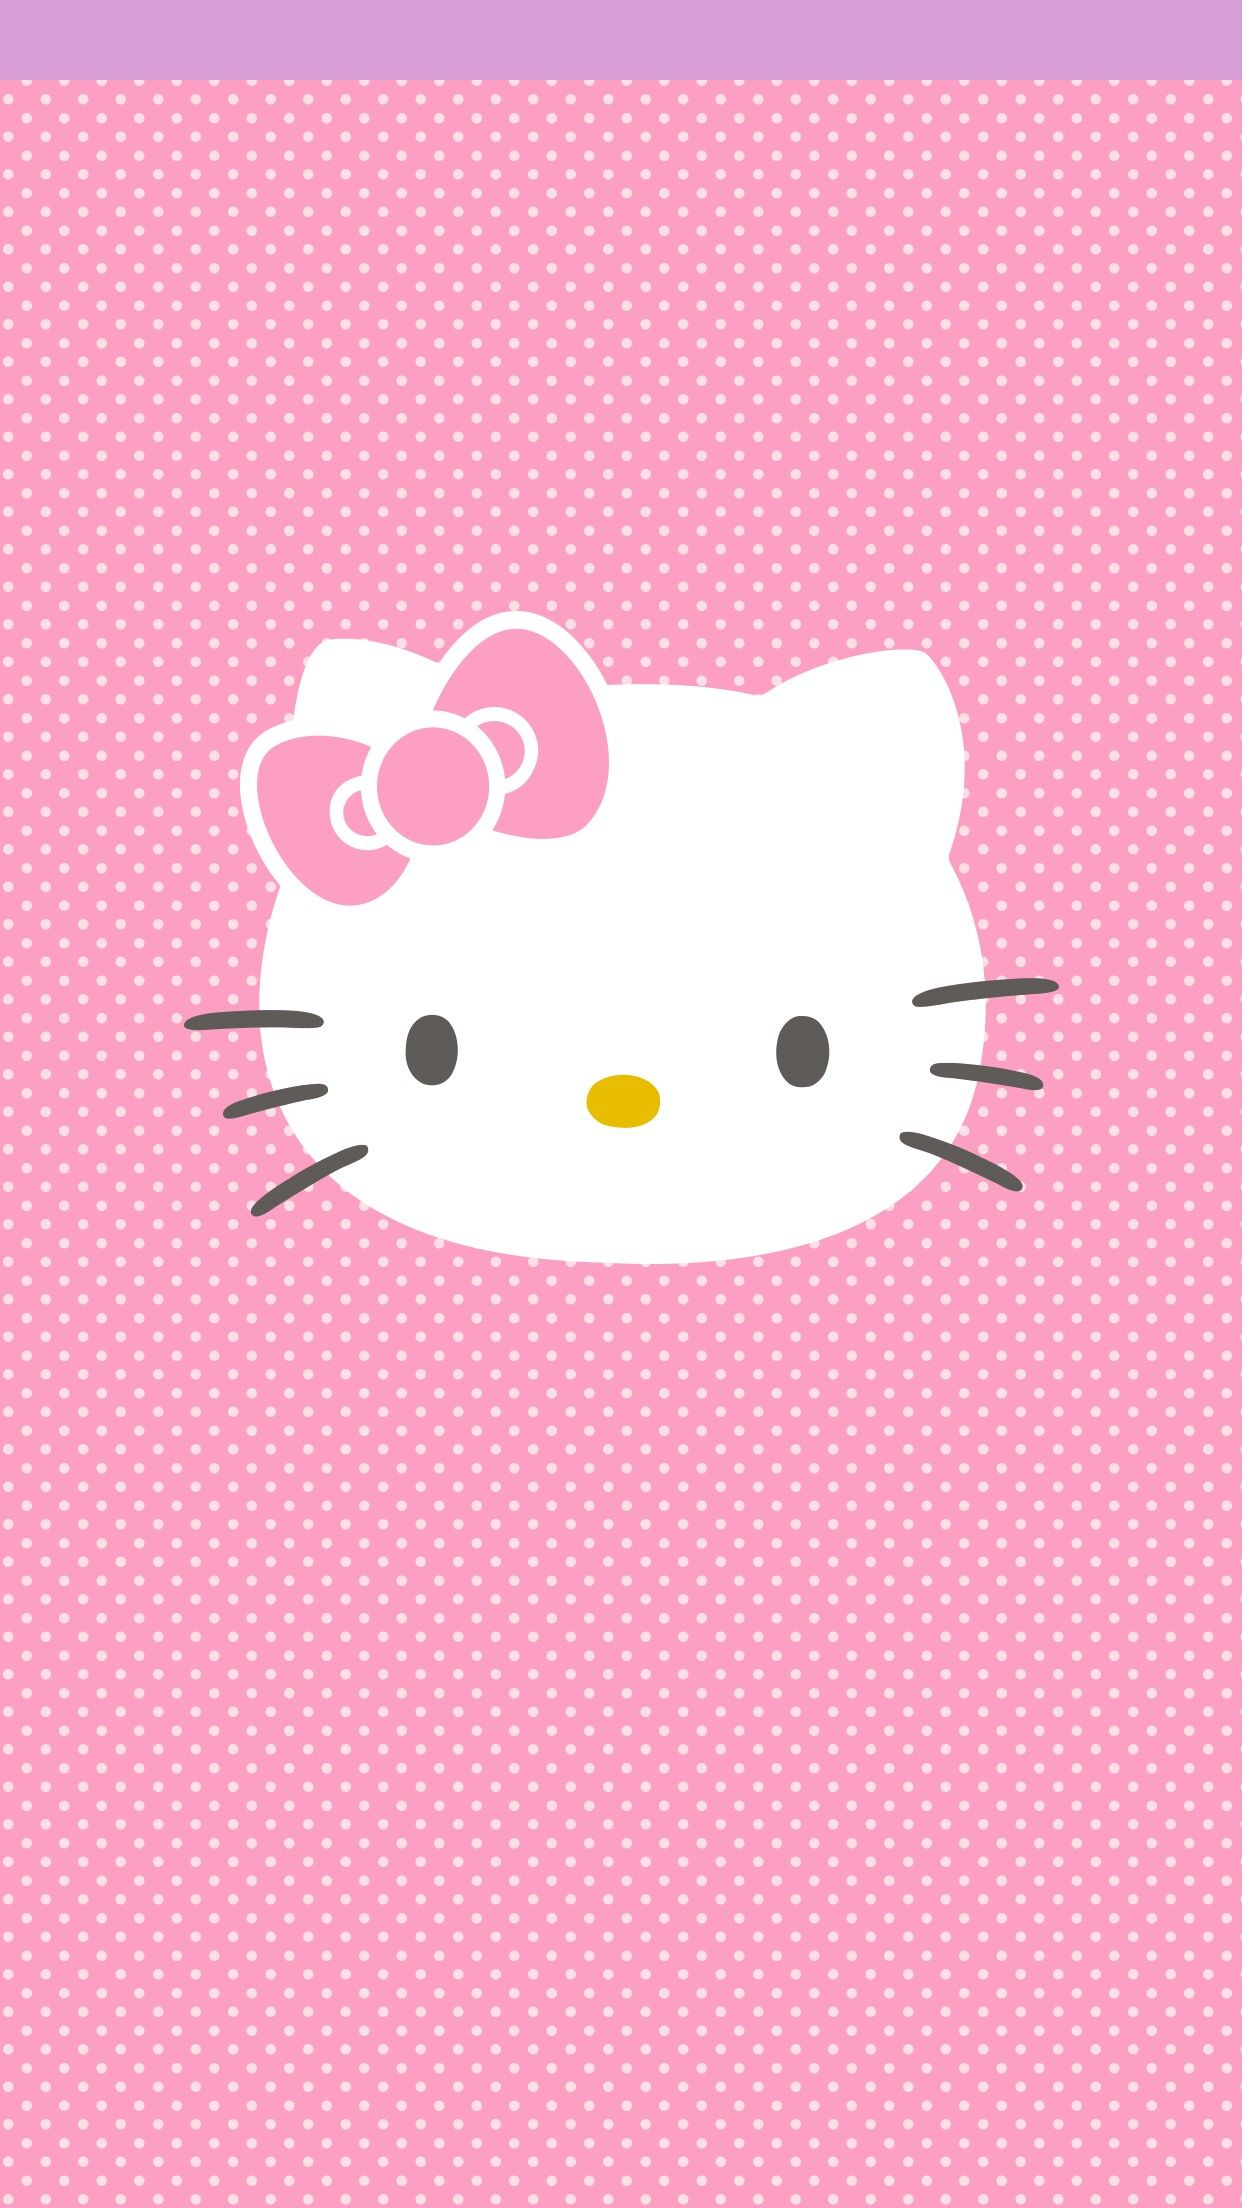 Must see Wallpaper Hello Kitty Iphone 5 - 9de46a72a1d589aeafcfd9819c7f4174  Perfect Image Reference_561785.jpg